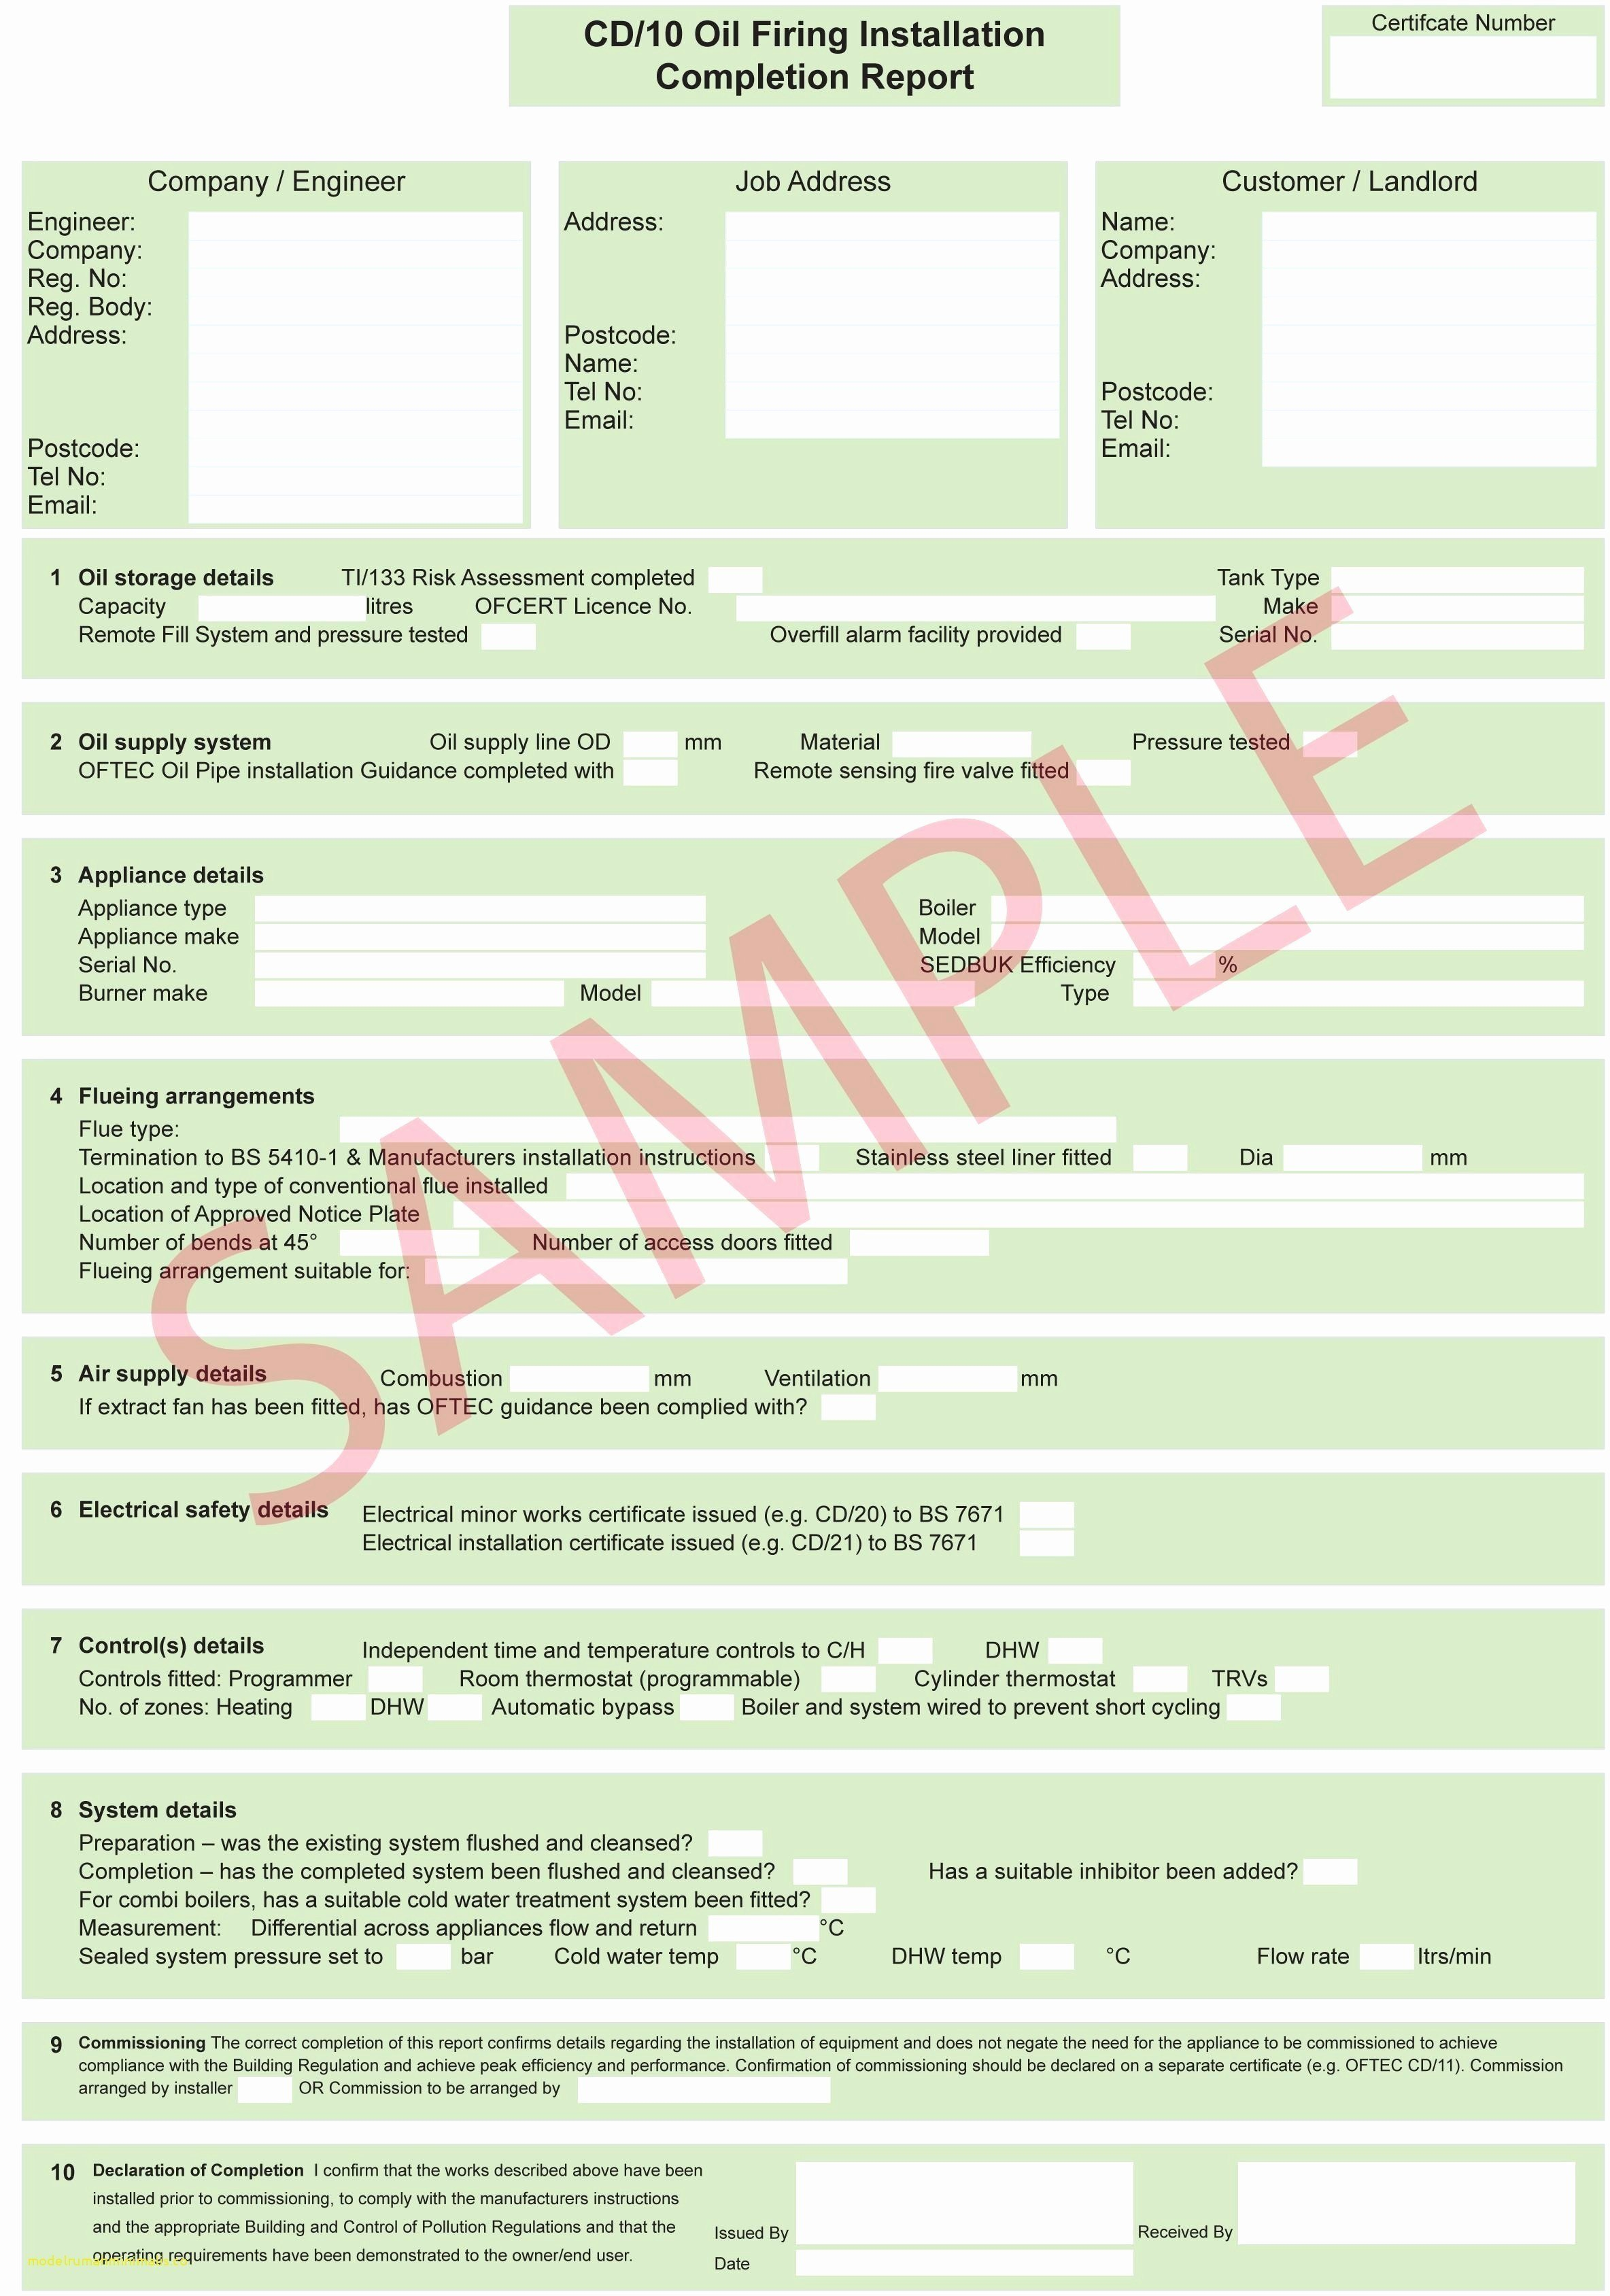 Awesome Collection For Electrical Isolation Certificate Template In Electrical Isolation Certificate Template